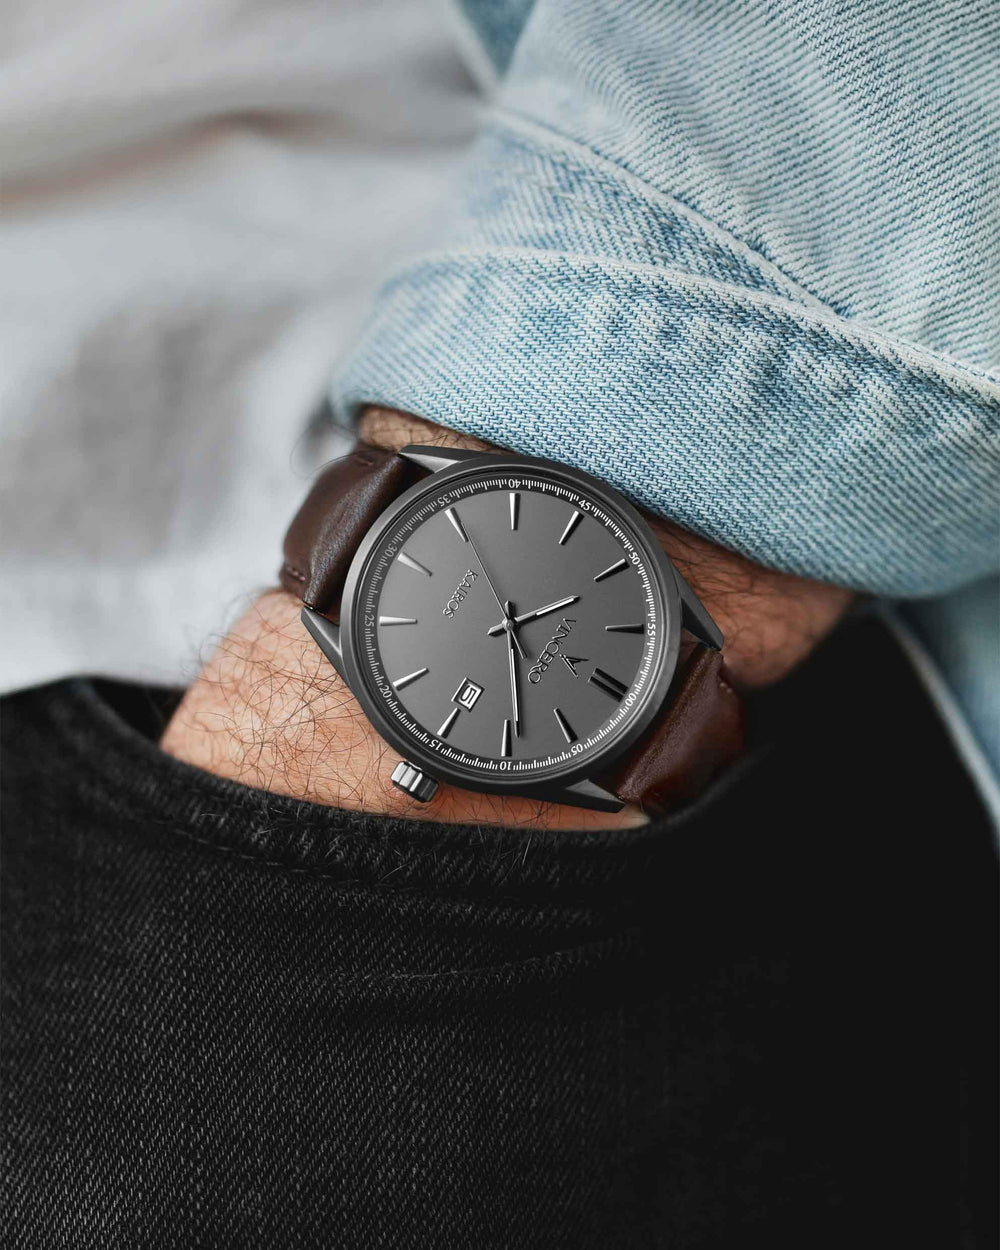 Kairos Walnut Italian Leather Strap Gunmetal Watch Face Gunmetal Case Clasp Gunmetal Accents